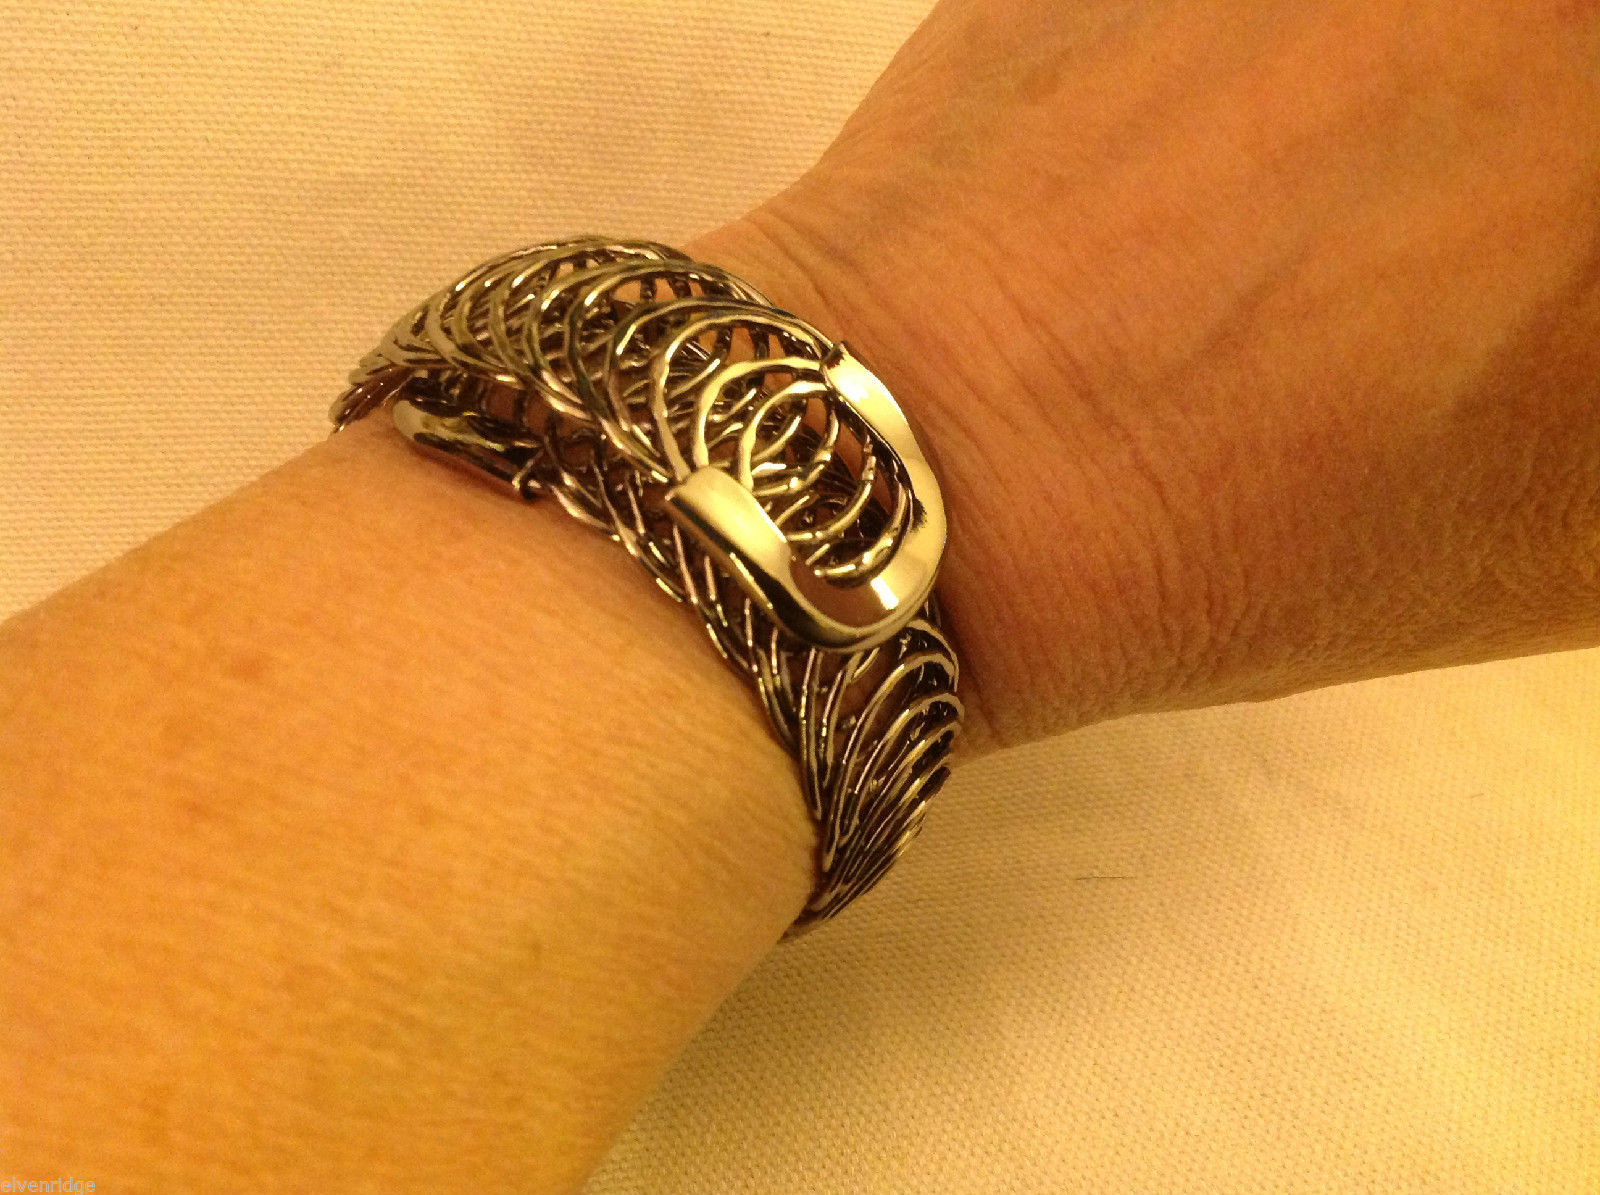 4 steampunk mod industrial black springs one size fits all bracelet cuff